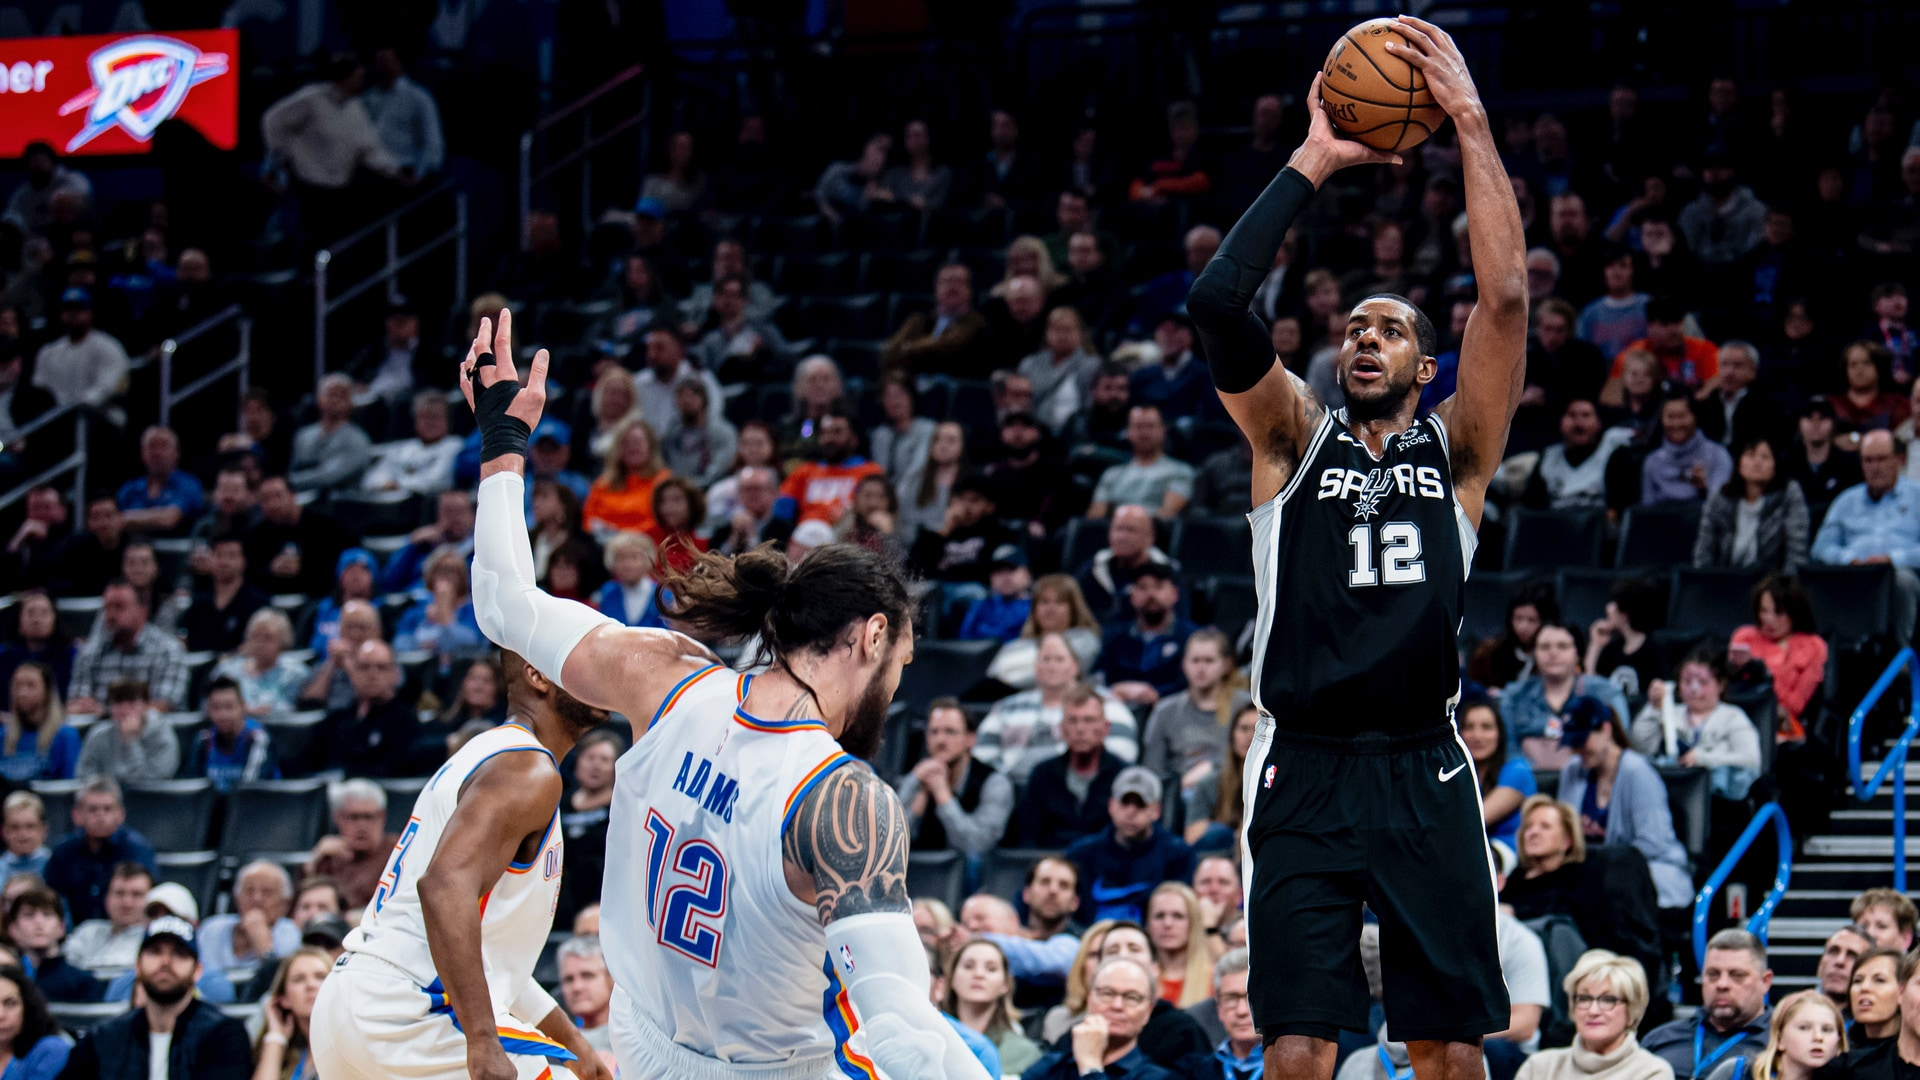 Highlights: Spurs vs. Thunder 2/11